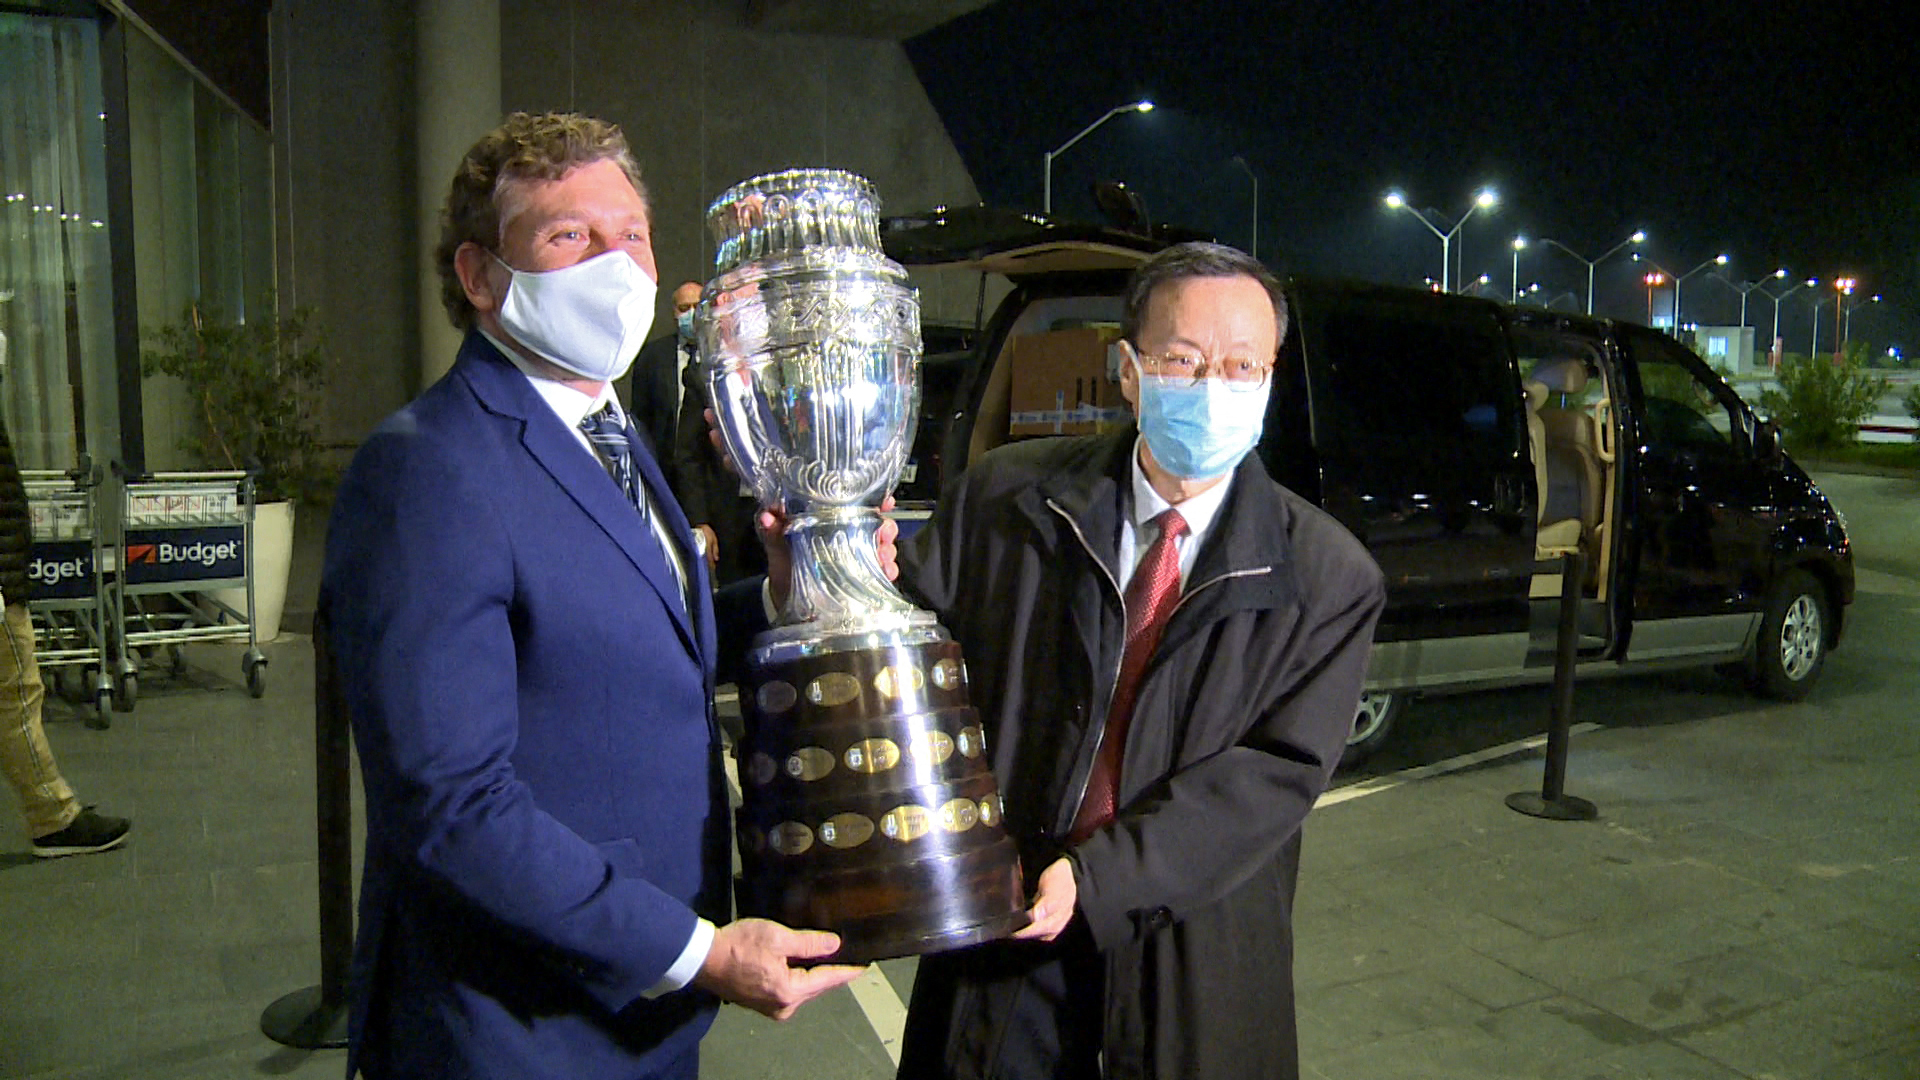 Screen grab showing Conmebol president, Paraguayan Alejandro Dominguez (L), and Chinese Ambassador in Uruguay Wang Gang, holding the Copa America trophy upon the arrival of 50,000 doses of the Chinese Sinovac vaccine against COVID-19 at the Carrasco International Airport in Ciudad de la Costa, Uruguay, on April 28, 2021. - The vaccines were donated by Chinese laboratory Sinovac to immunize South American football players, who will take part in the Conmebol Copa America and other tournaments. (Photo by Nicolas GARCIA / AFPTV / AFP) (Photo by NICOLAS GARCIA/AFPTV/AFP via Getty Images)